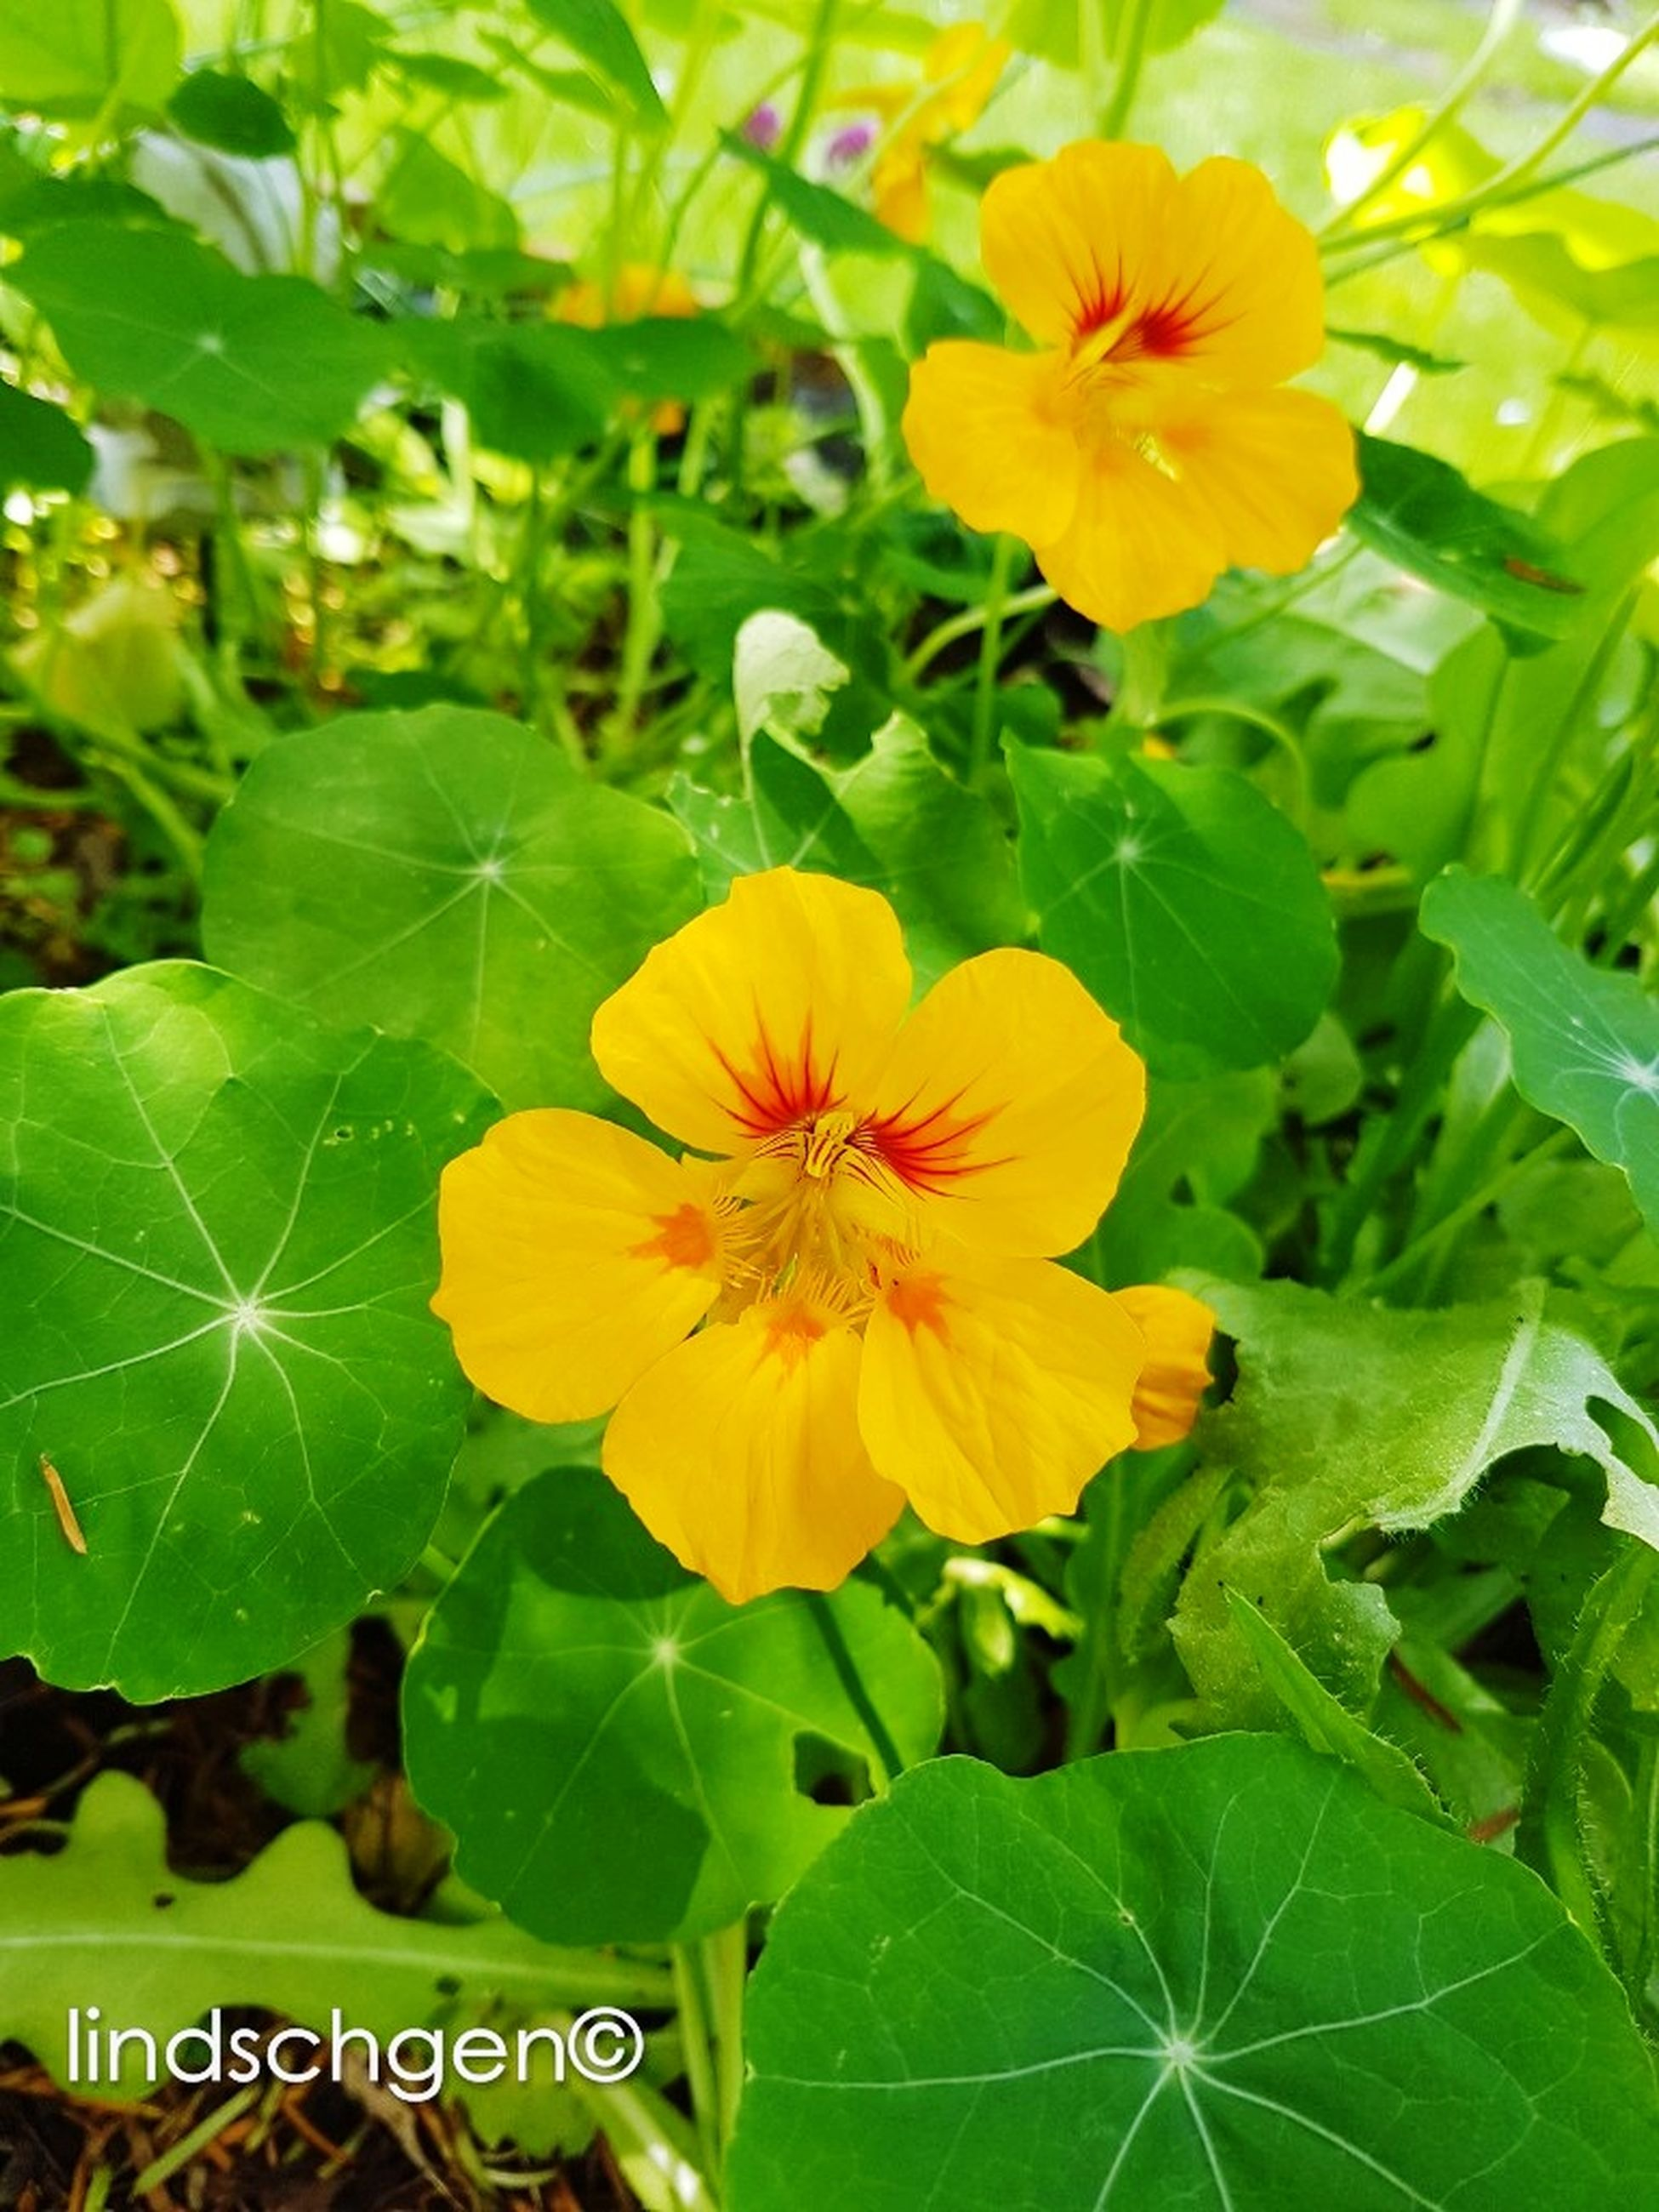 flower, fragility, flower head, petal, plant, beauty in nature, nature, freshness, leaf, growth, yellow, green color, close-up, no people, outdoors, day, blooming, hibiscus